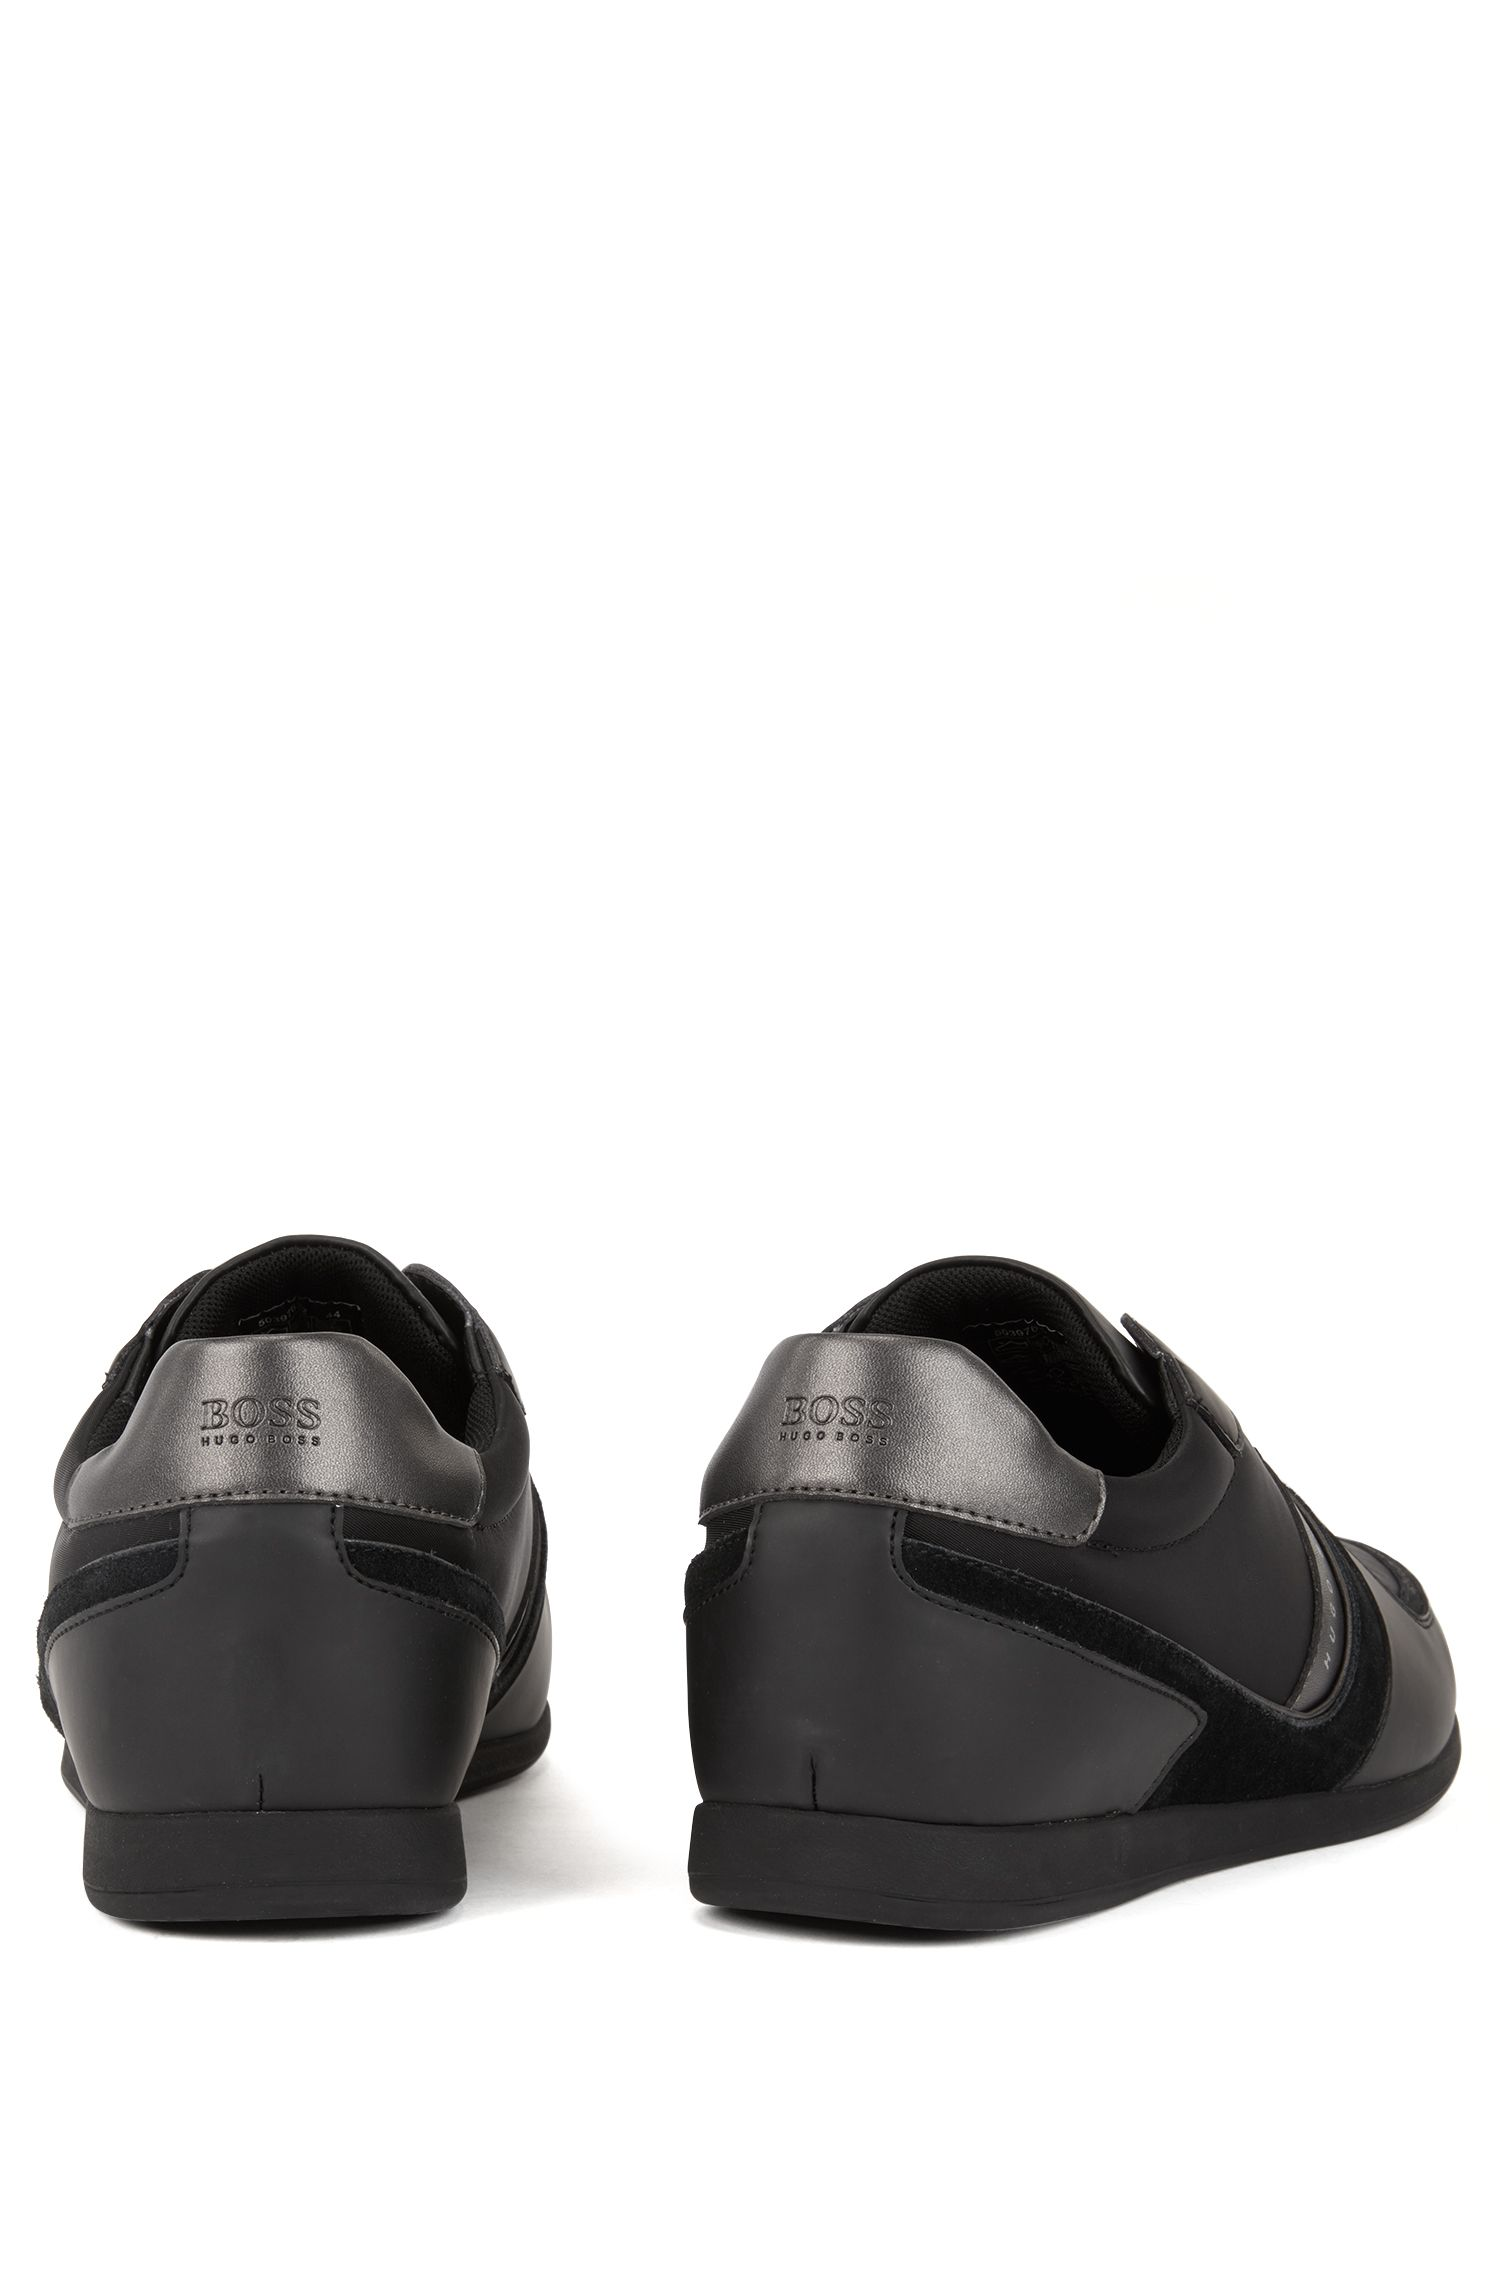 Sneakers low-top con tomaia senza stringhe, Nero